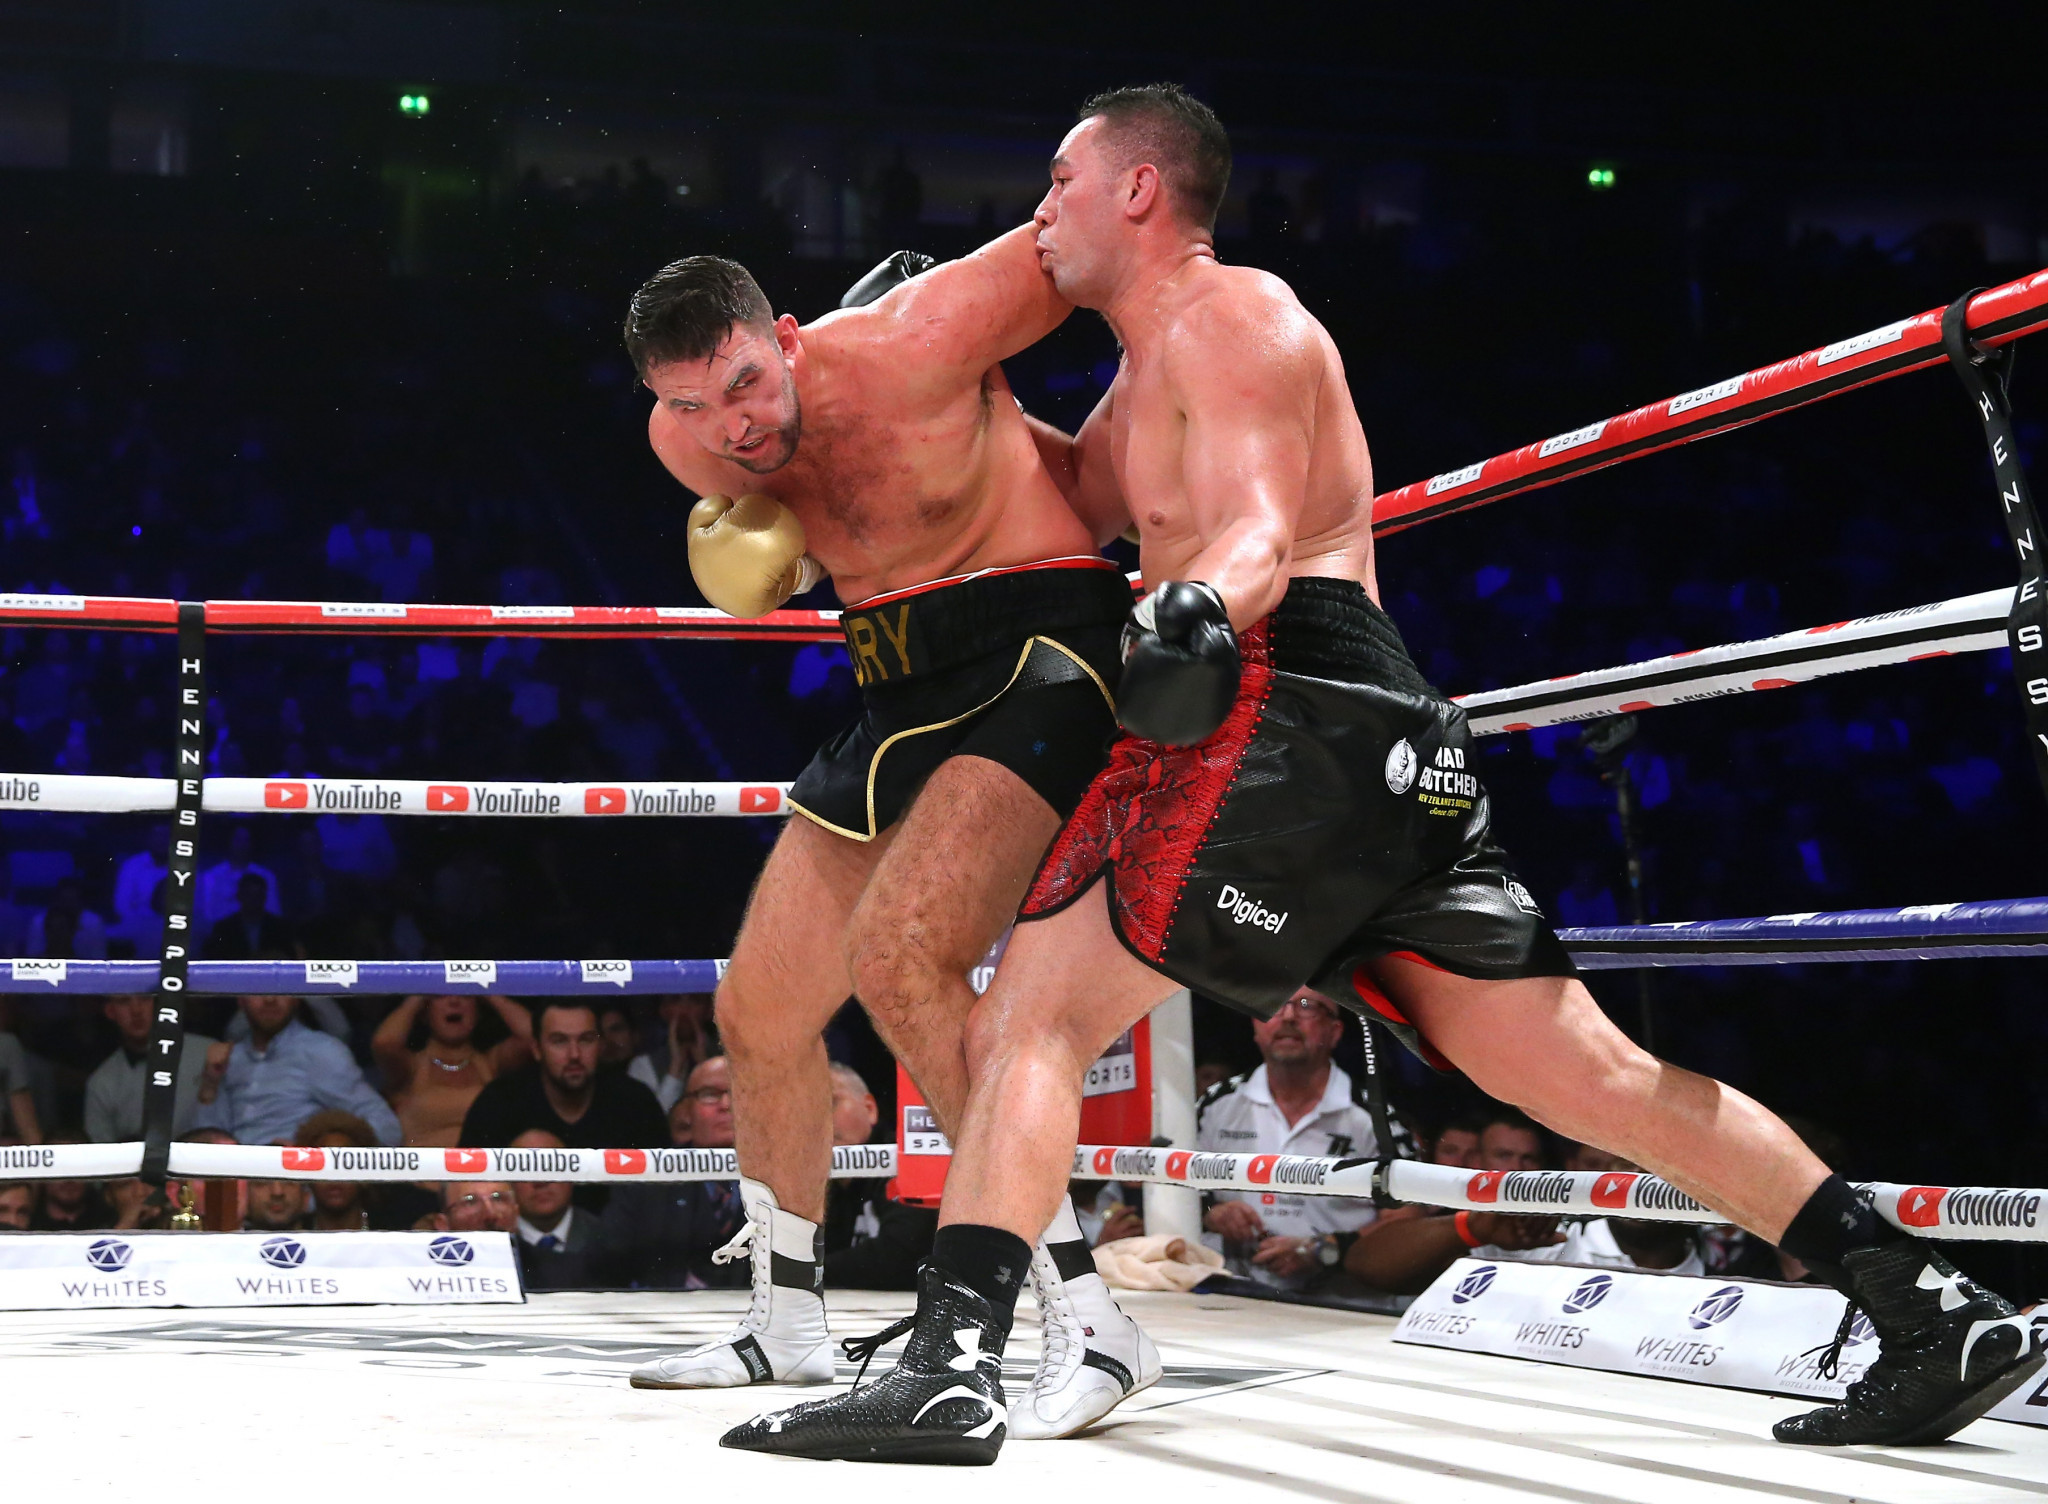 The fight between Joseph Parker, right, and Hughie Fury led to criticism of judging ©Getty Images